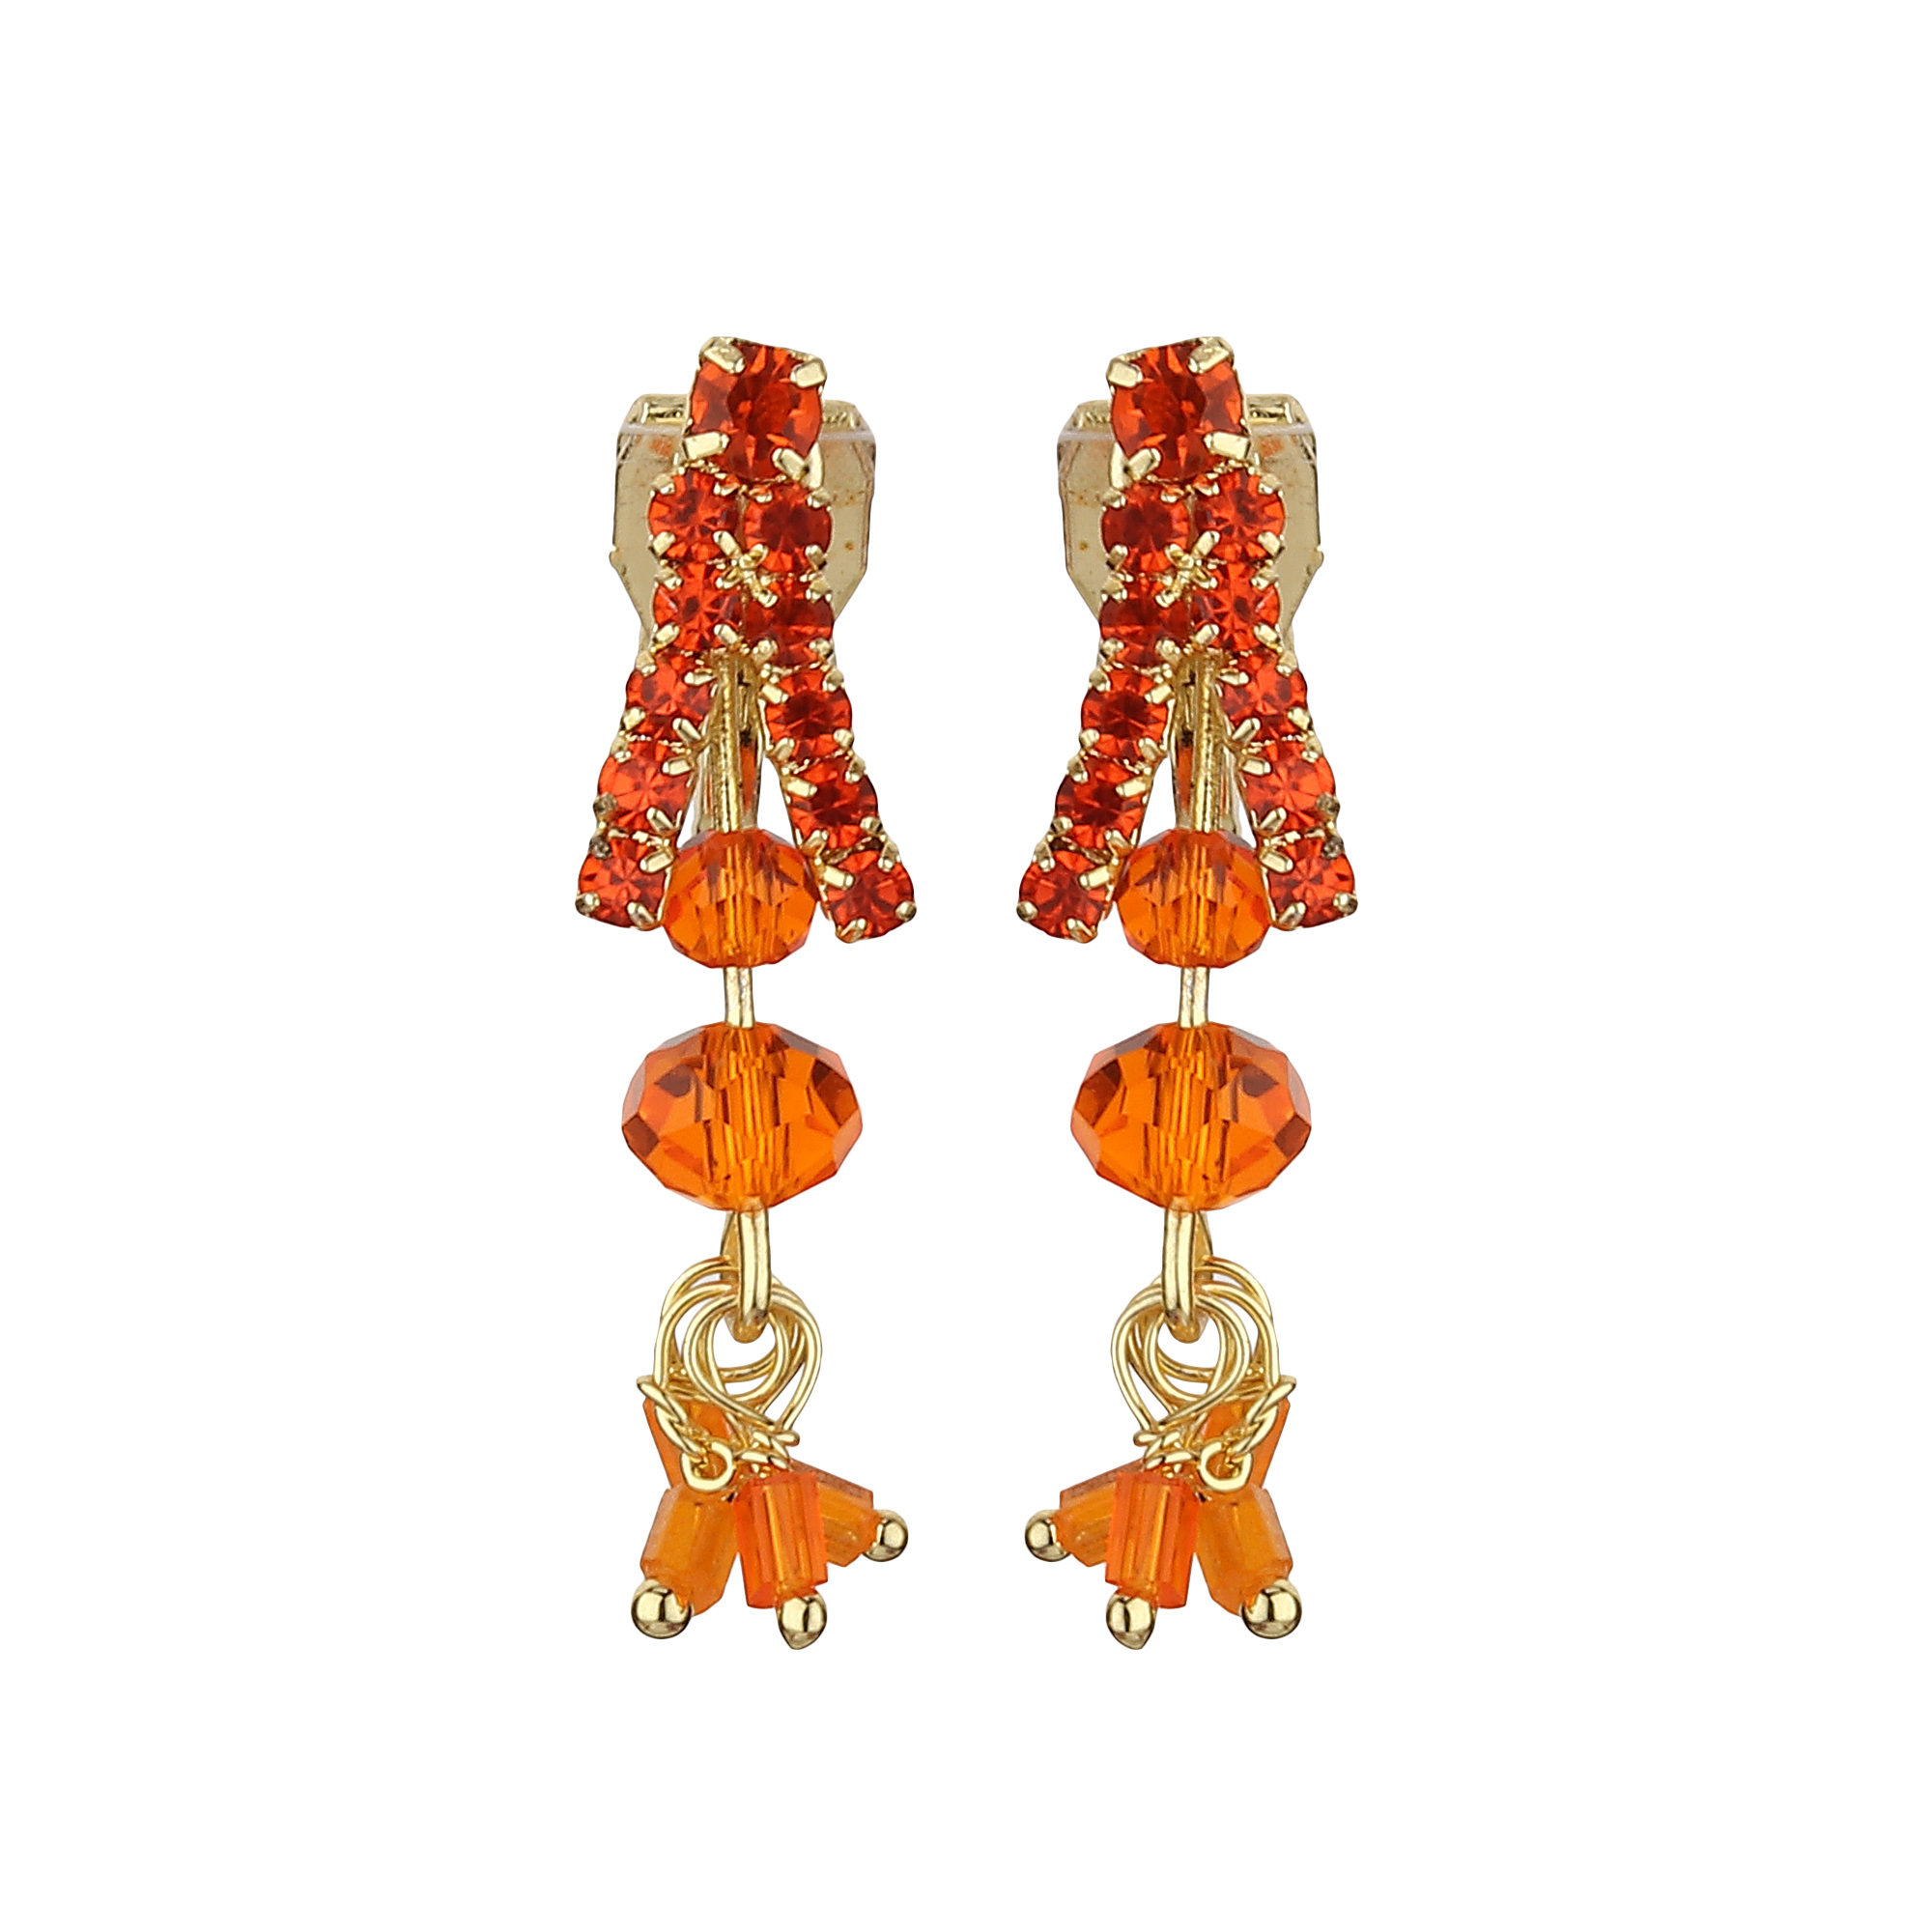 FirstBlush | FirstBlush Clip On Earrings for Non Piearced Ears for Women & Girls; Plating: Gold; Color: Orange; Size: 30 X 10mm; Wt.: 3gm. (MIEC104M146)